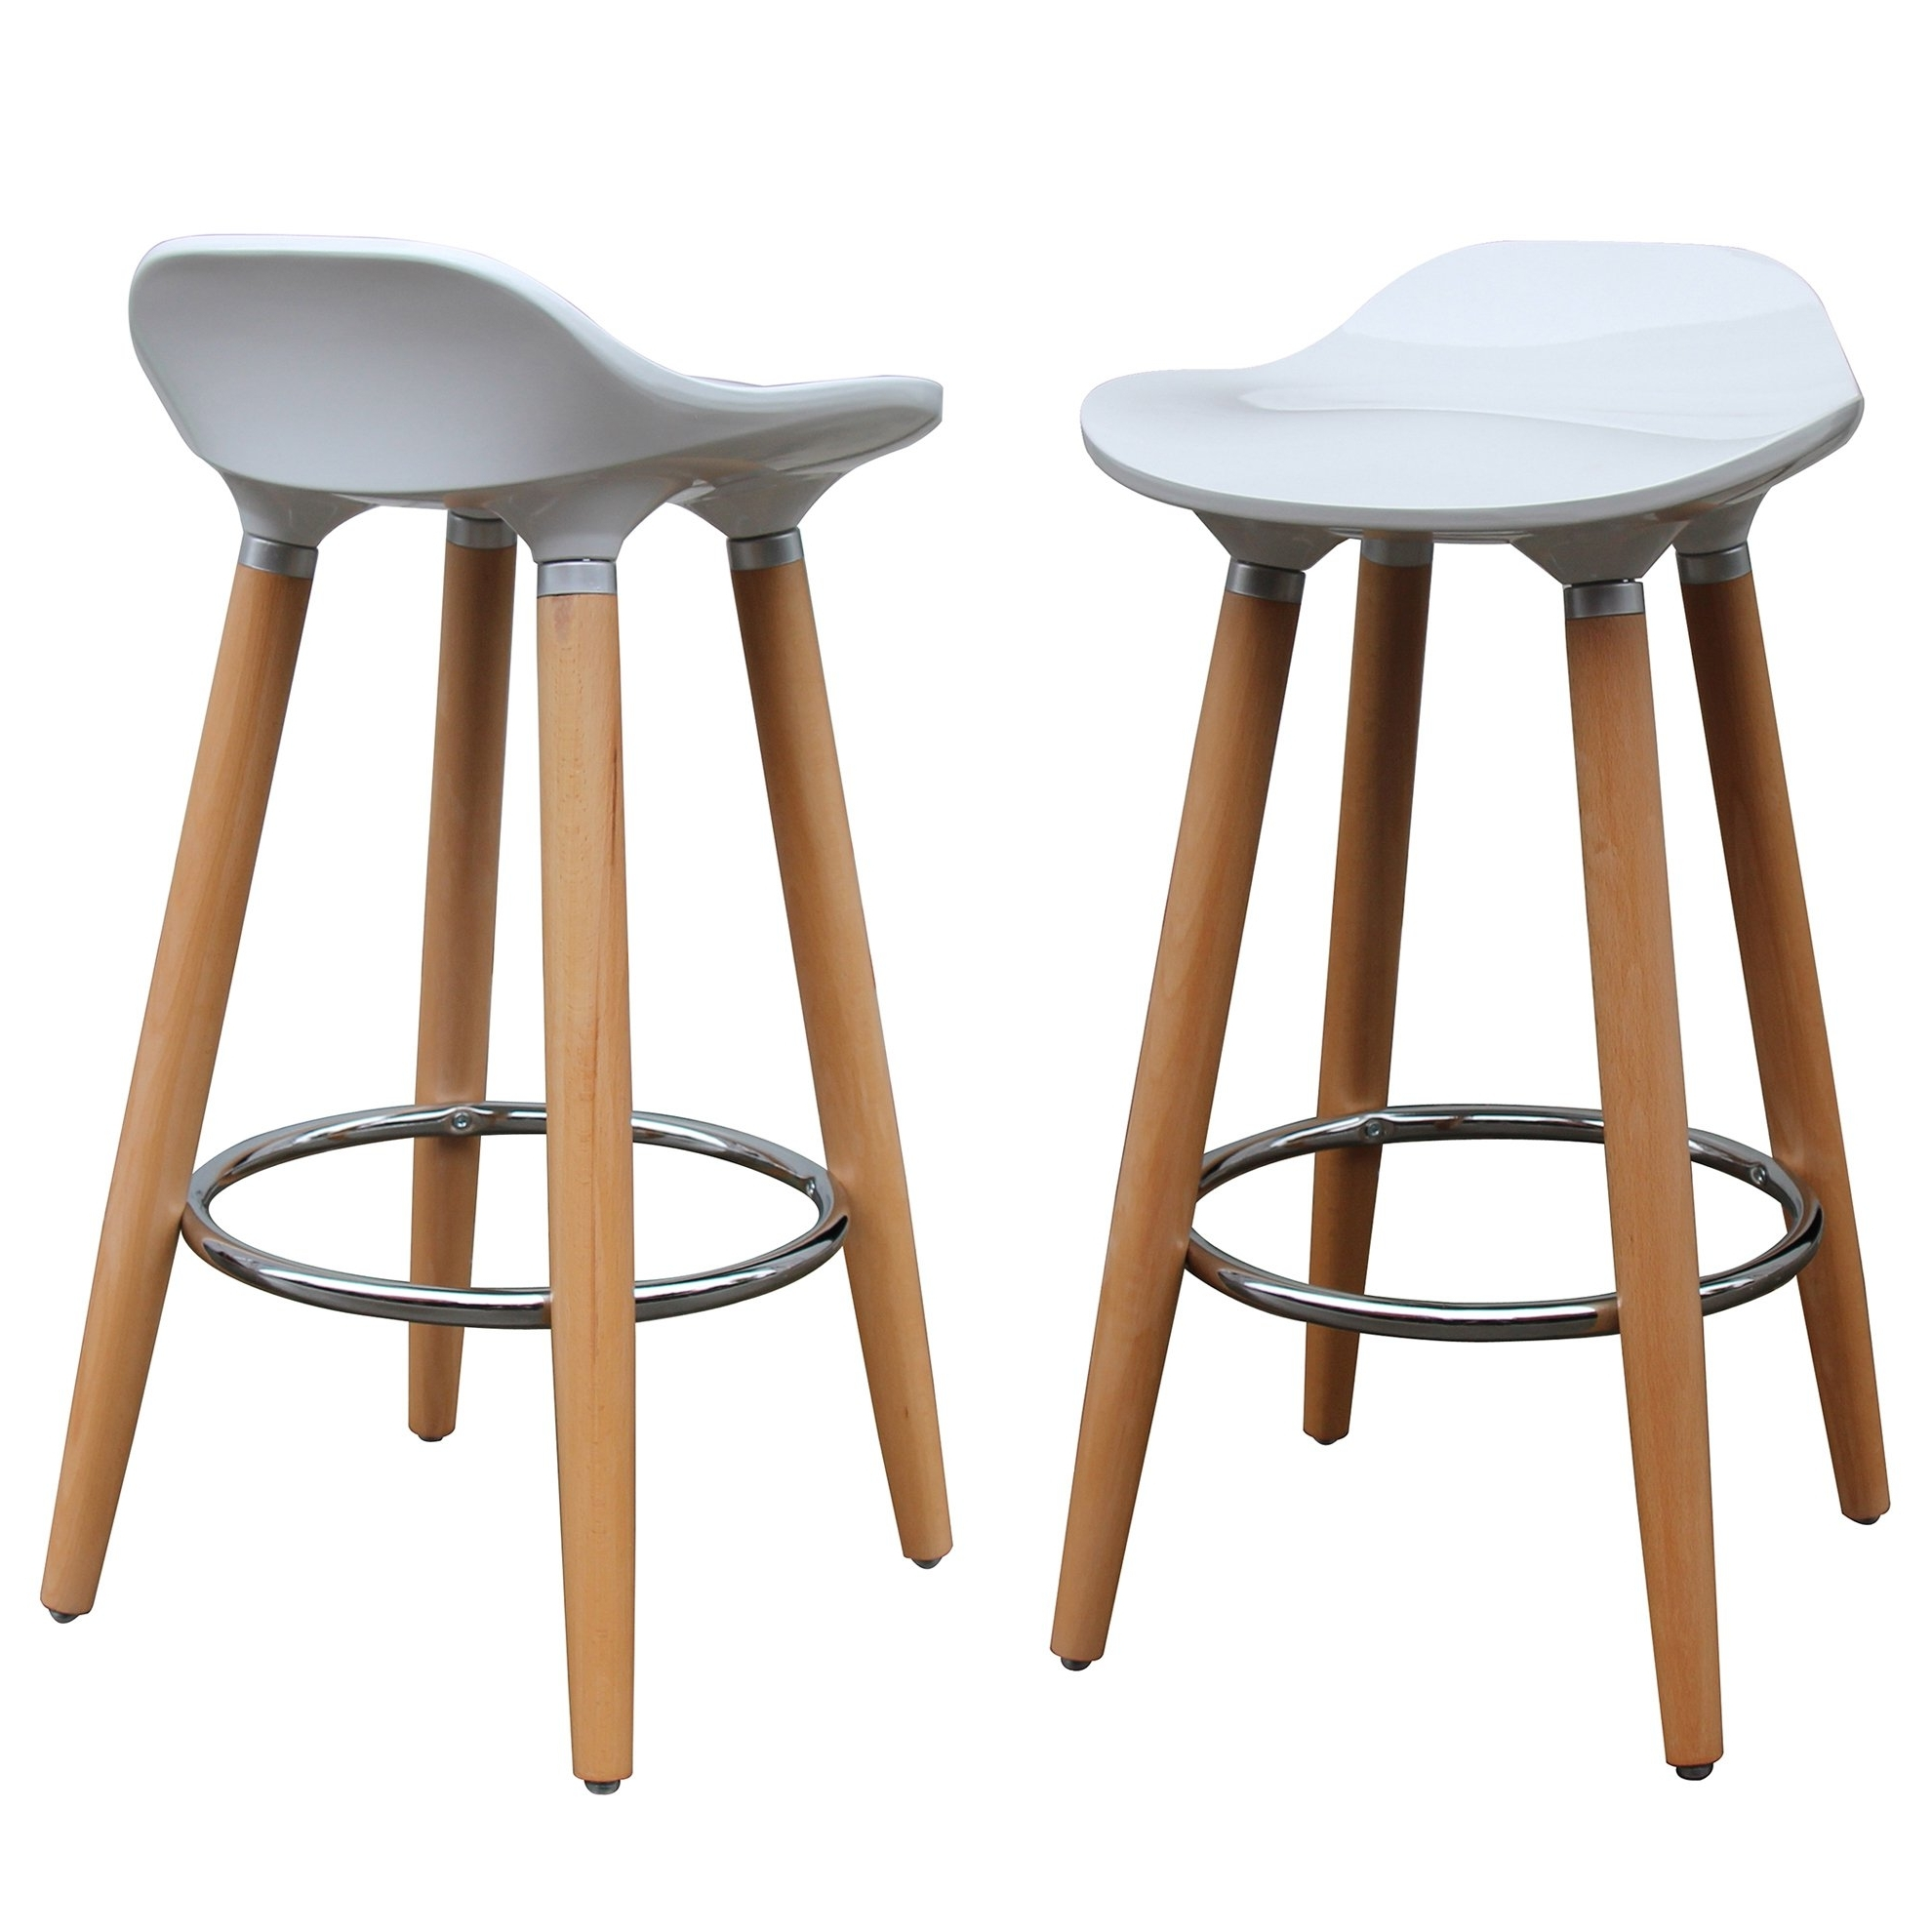 Laurent 7 Piece Counter Sets With Upholstered Counterstools Intended For Latest Shop Trex 26 Inch Counter Stool (Set Of 2) – Free Shipping Today (View 7 of 25)